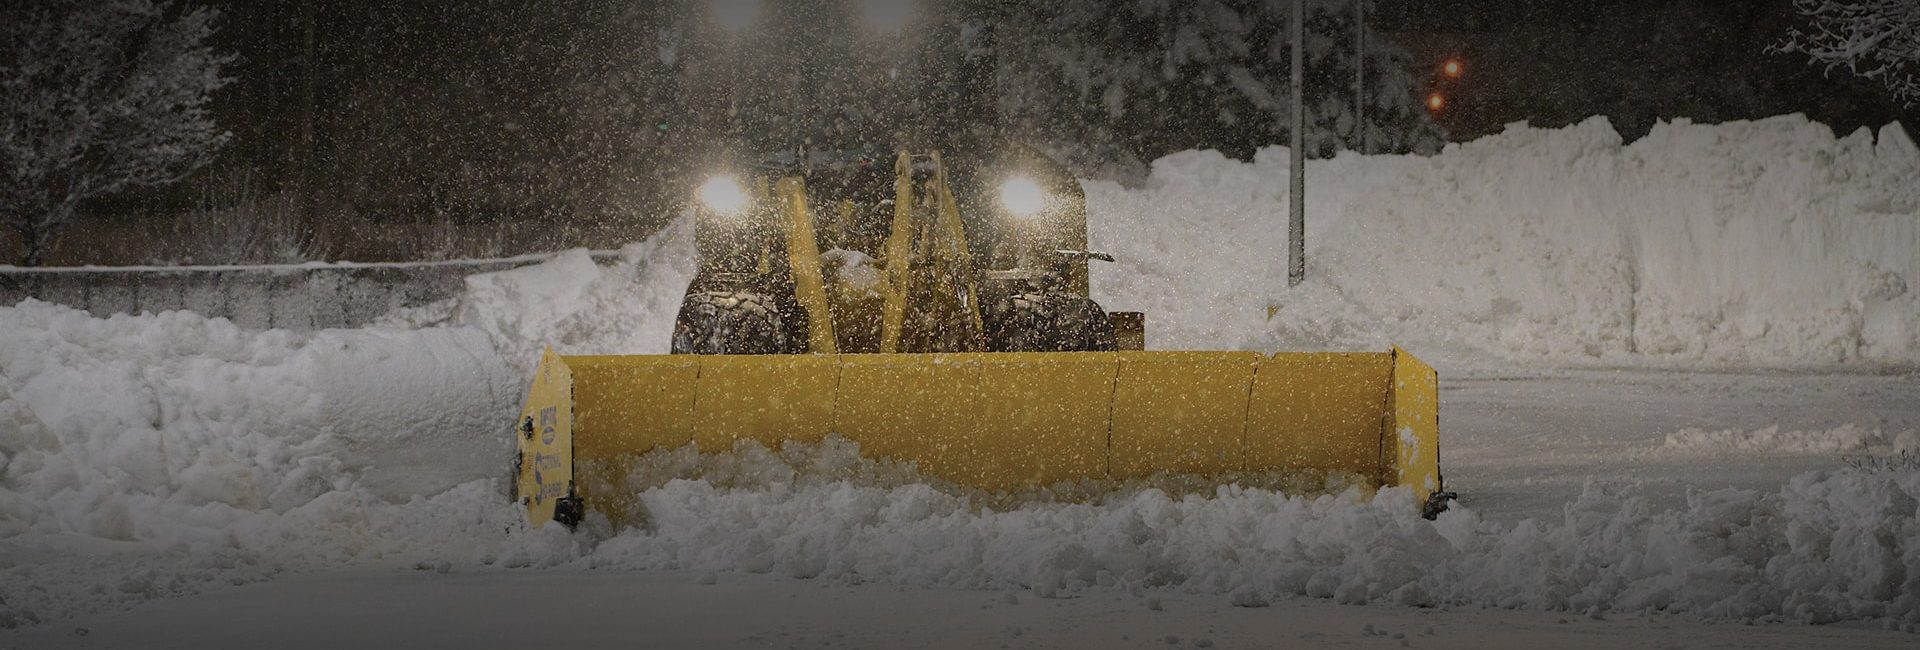 1-2″ of Light Snow and Gusty Winds Expected Tonight